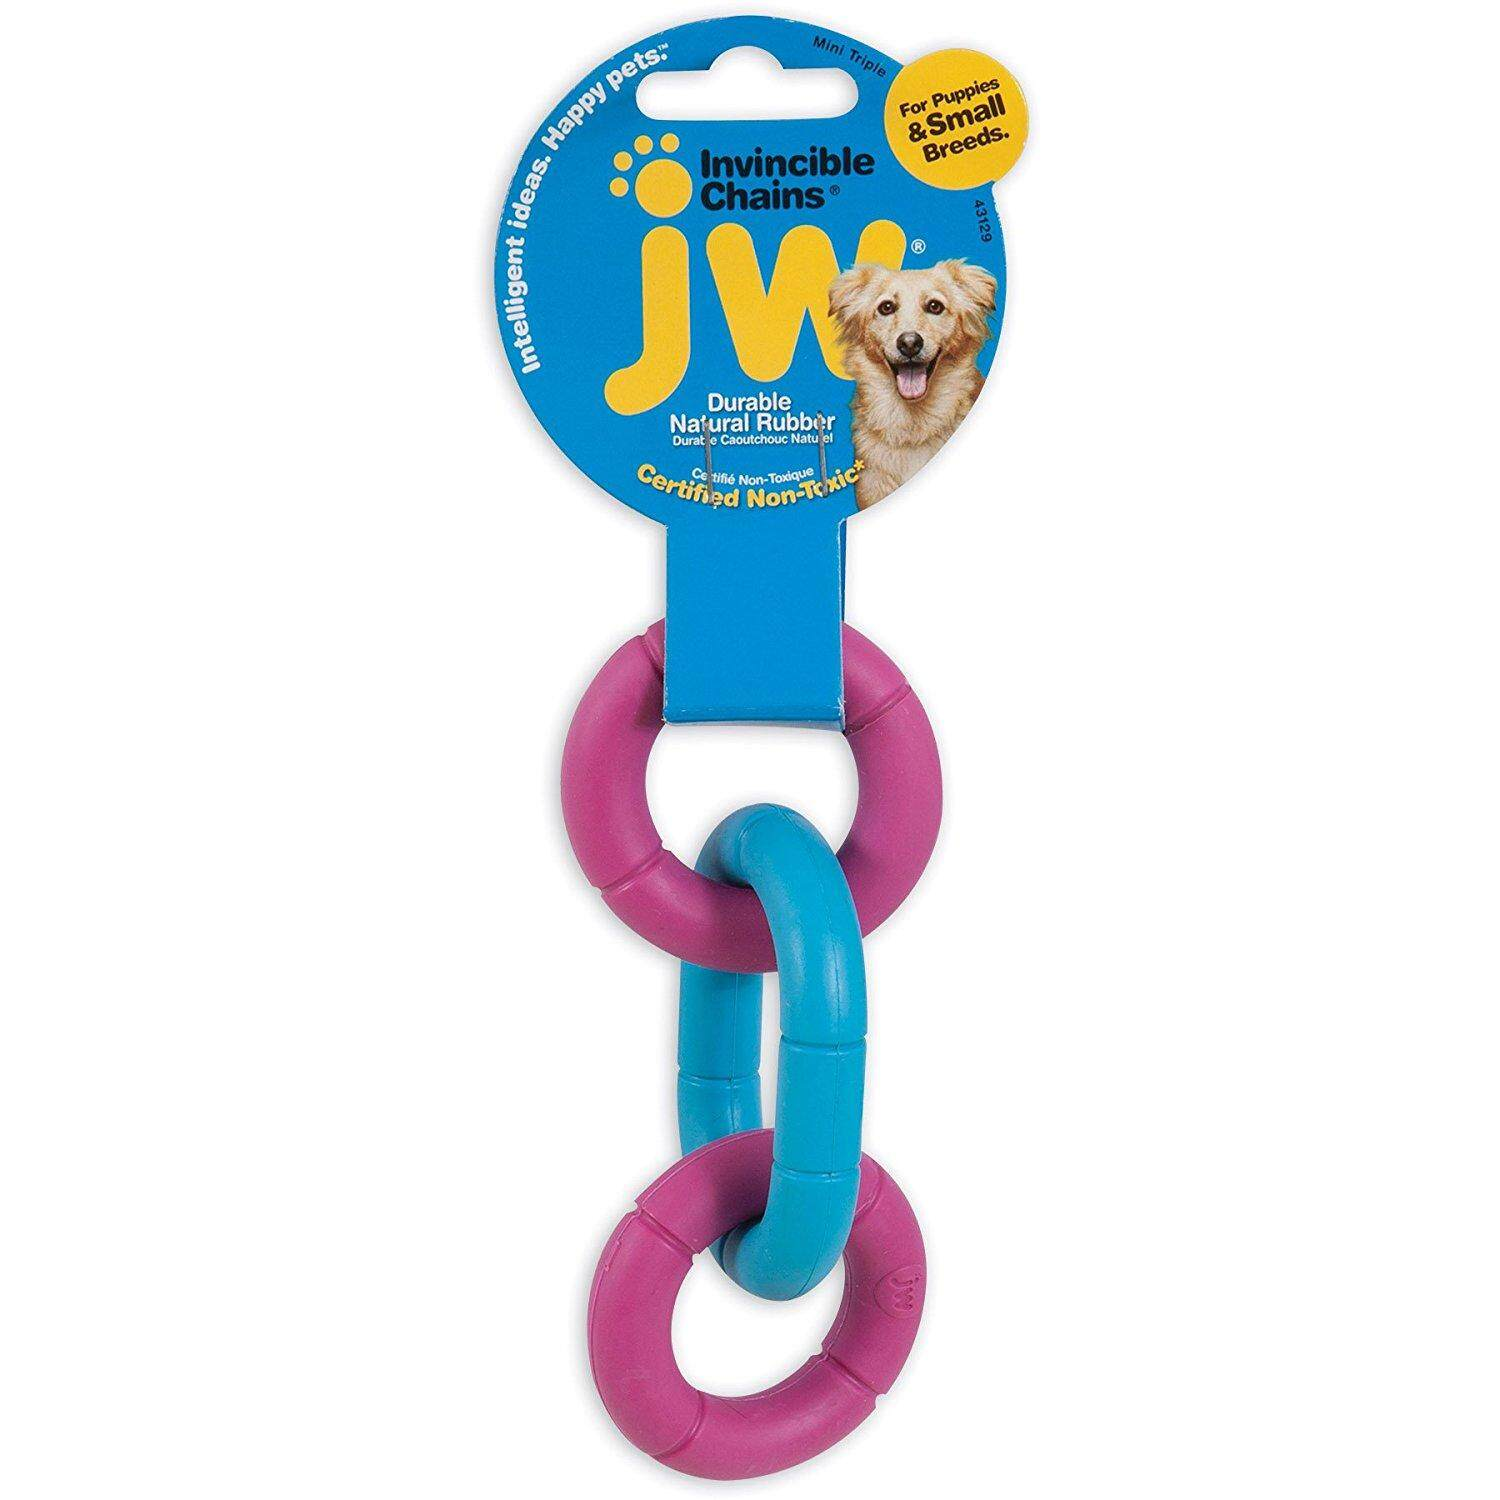 [JW PET TOYS] Invincible Chains Dog Solid Rubber Toy - Mini